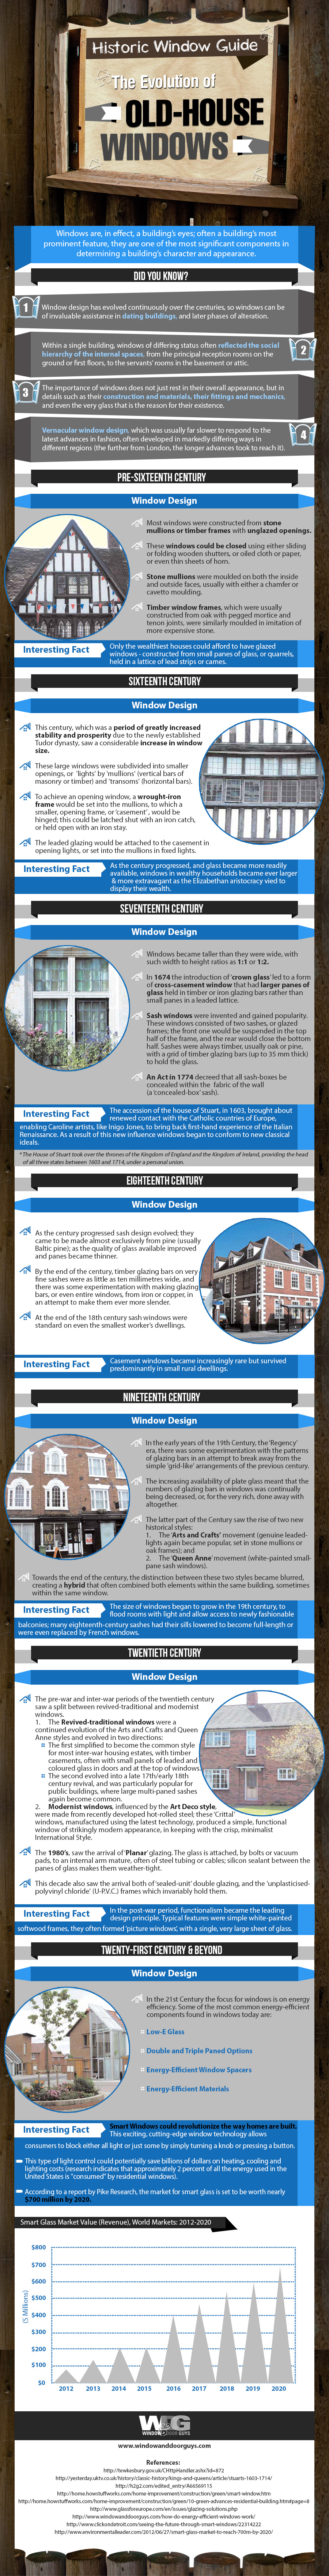 Historic Window Guide: The Evolution of Old-House Windows